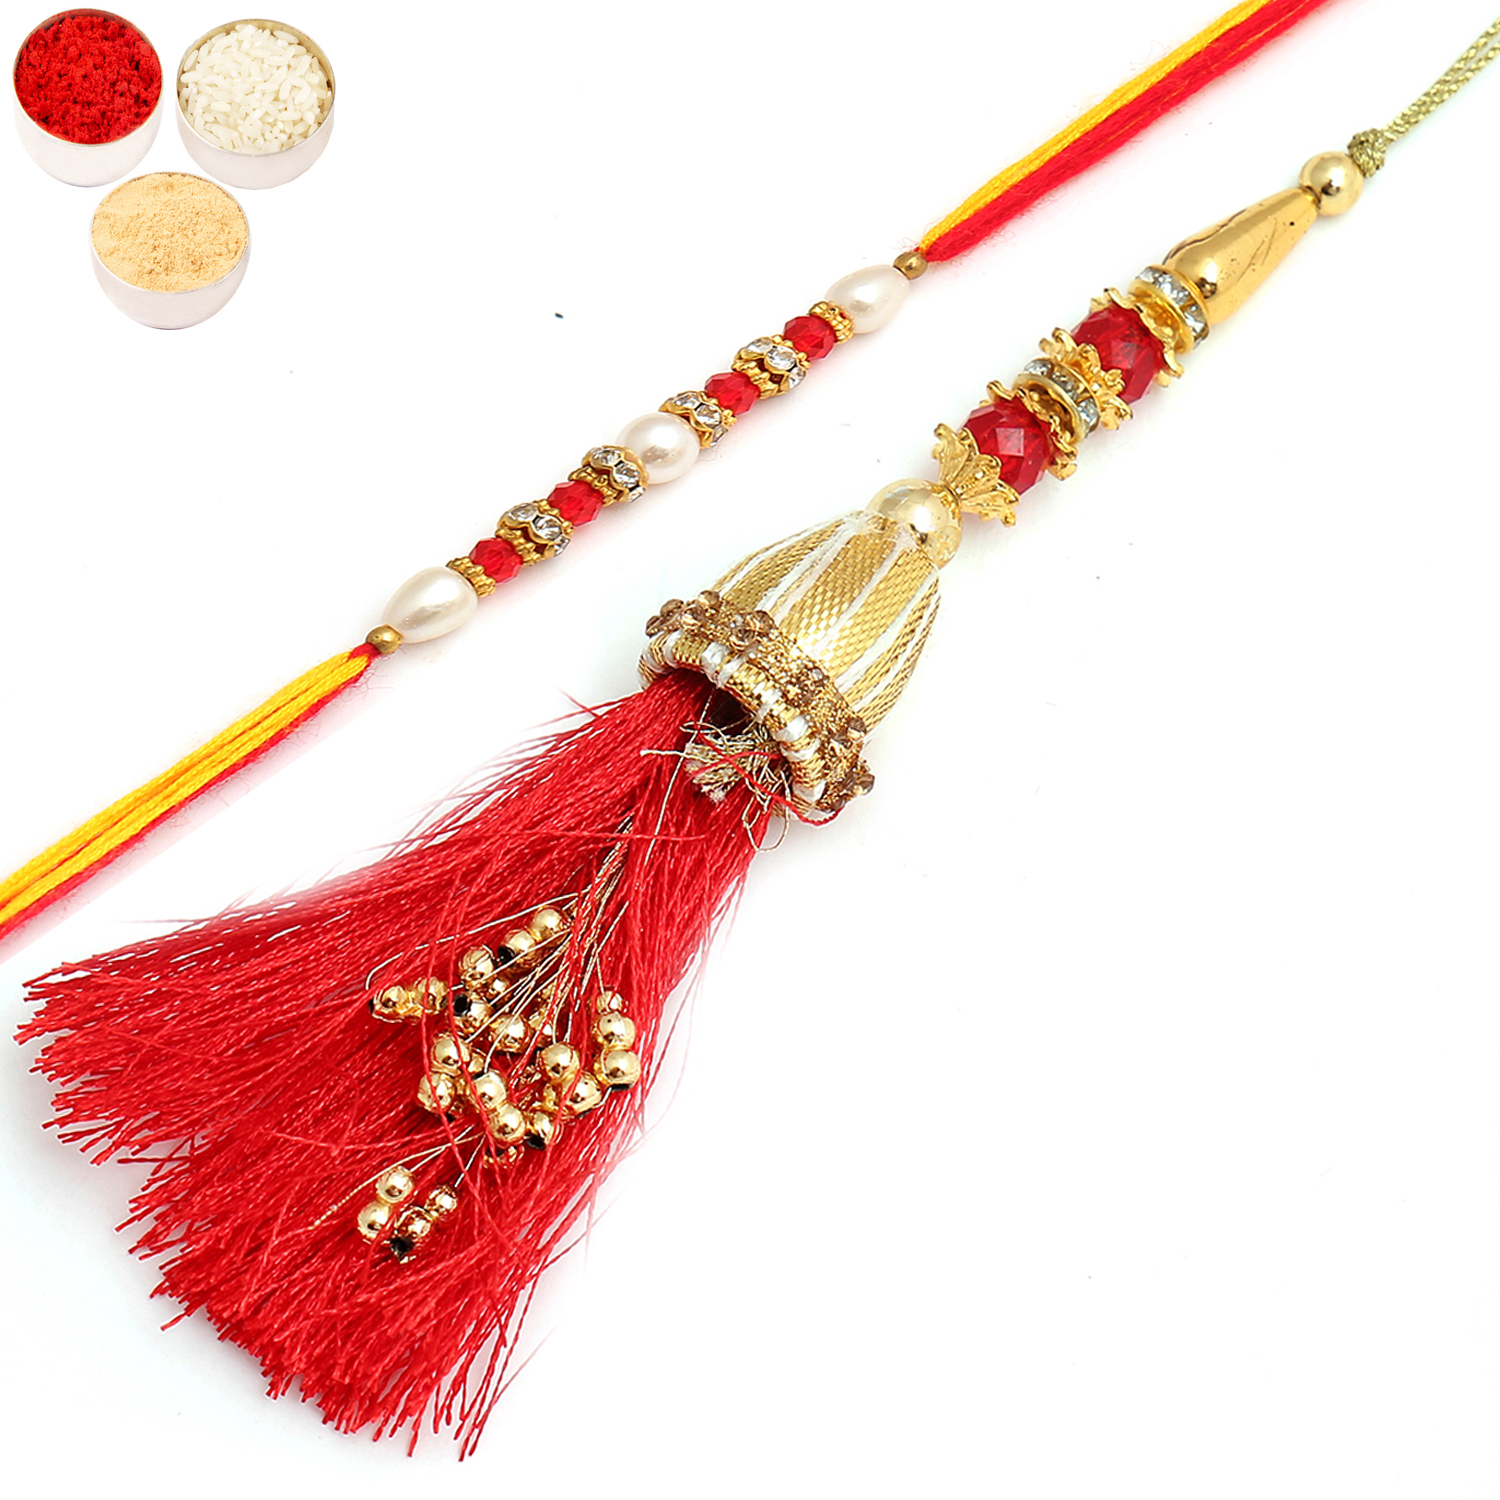 The Ever Lasting Bond rm100 Bhaiya Bhabhi Rakhi